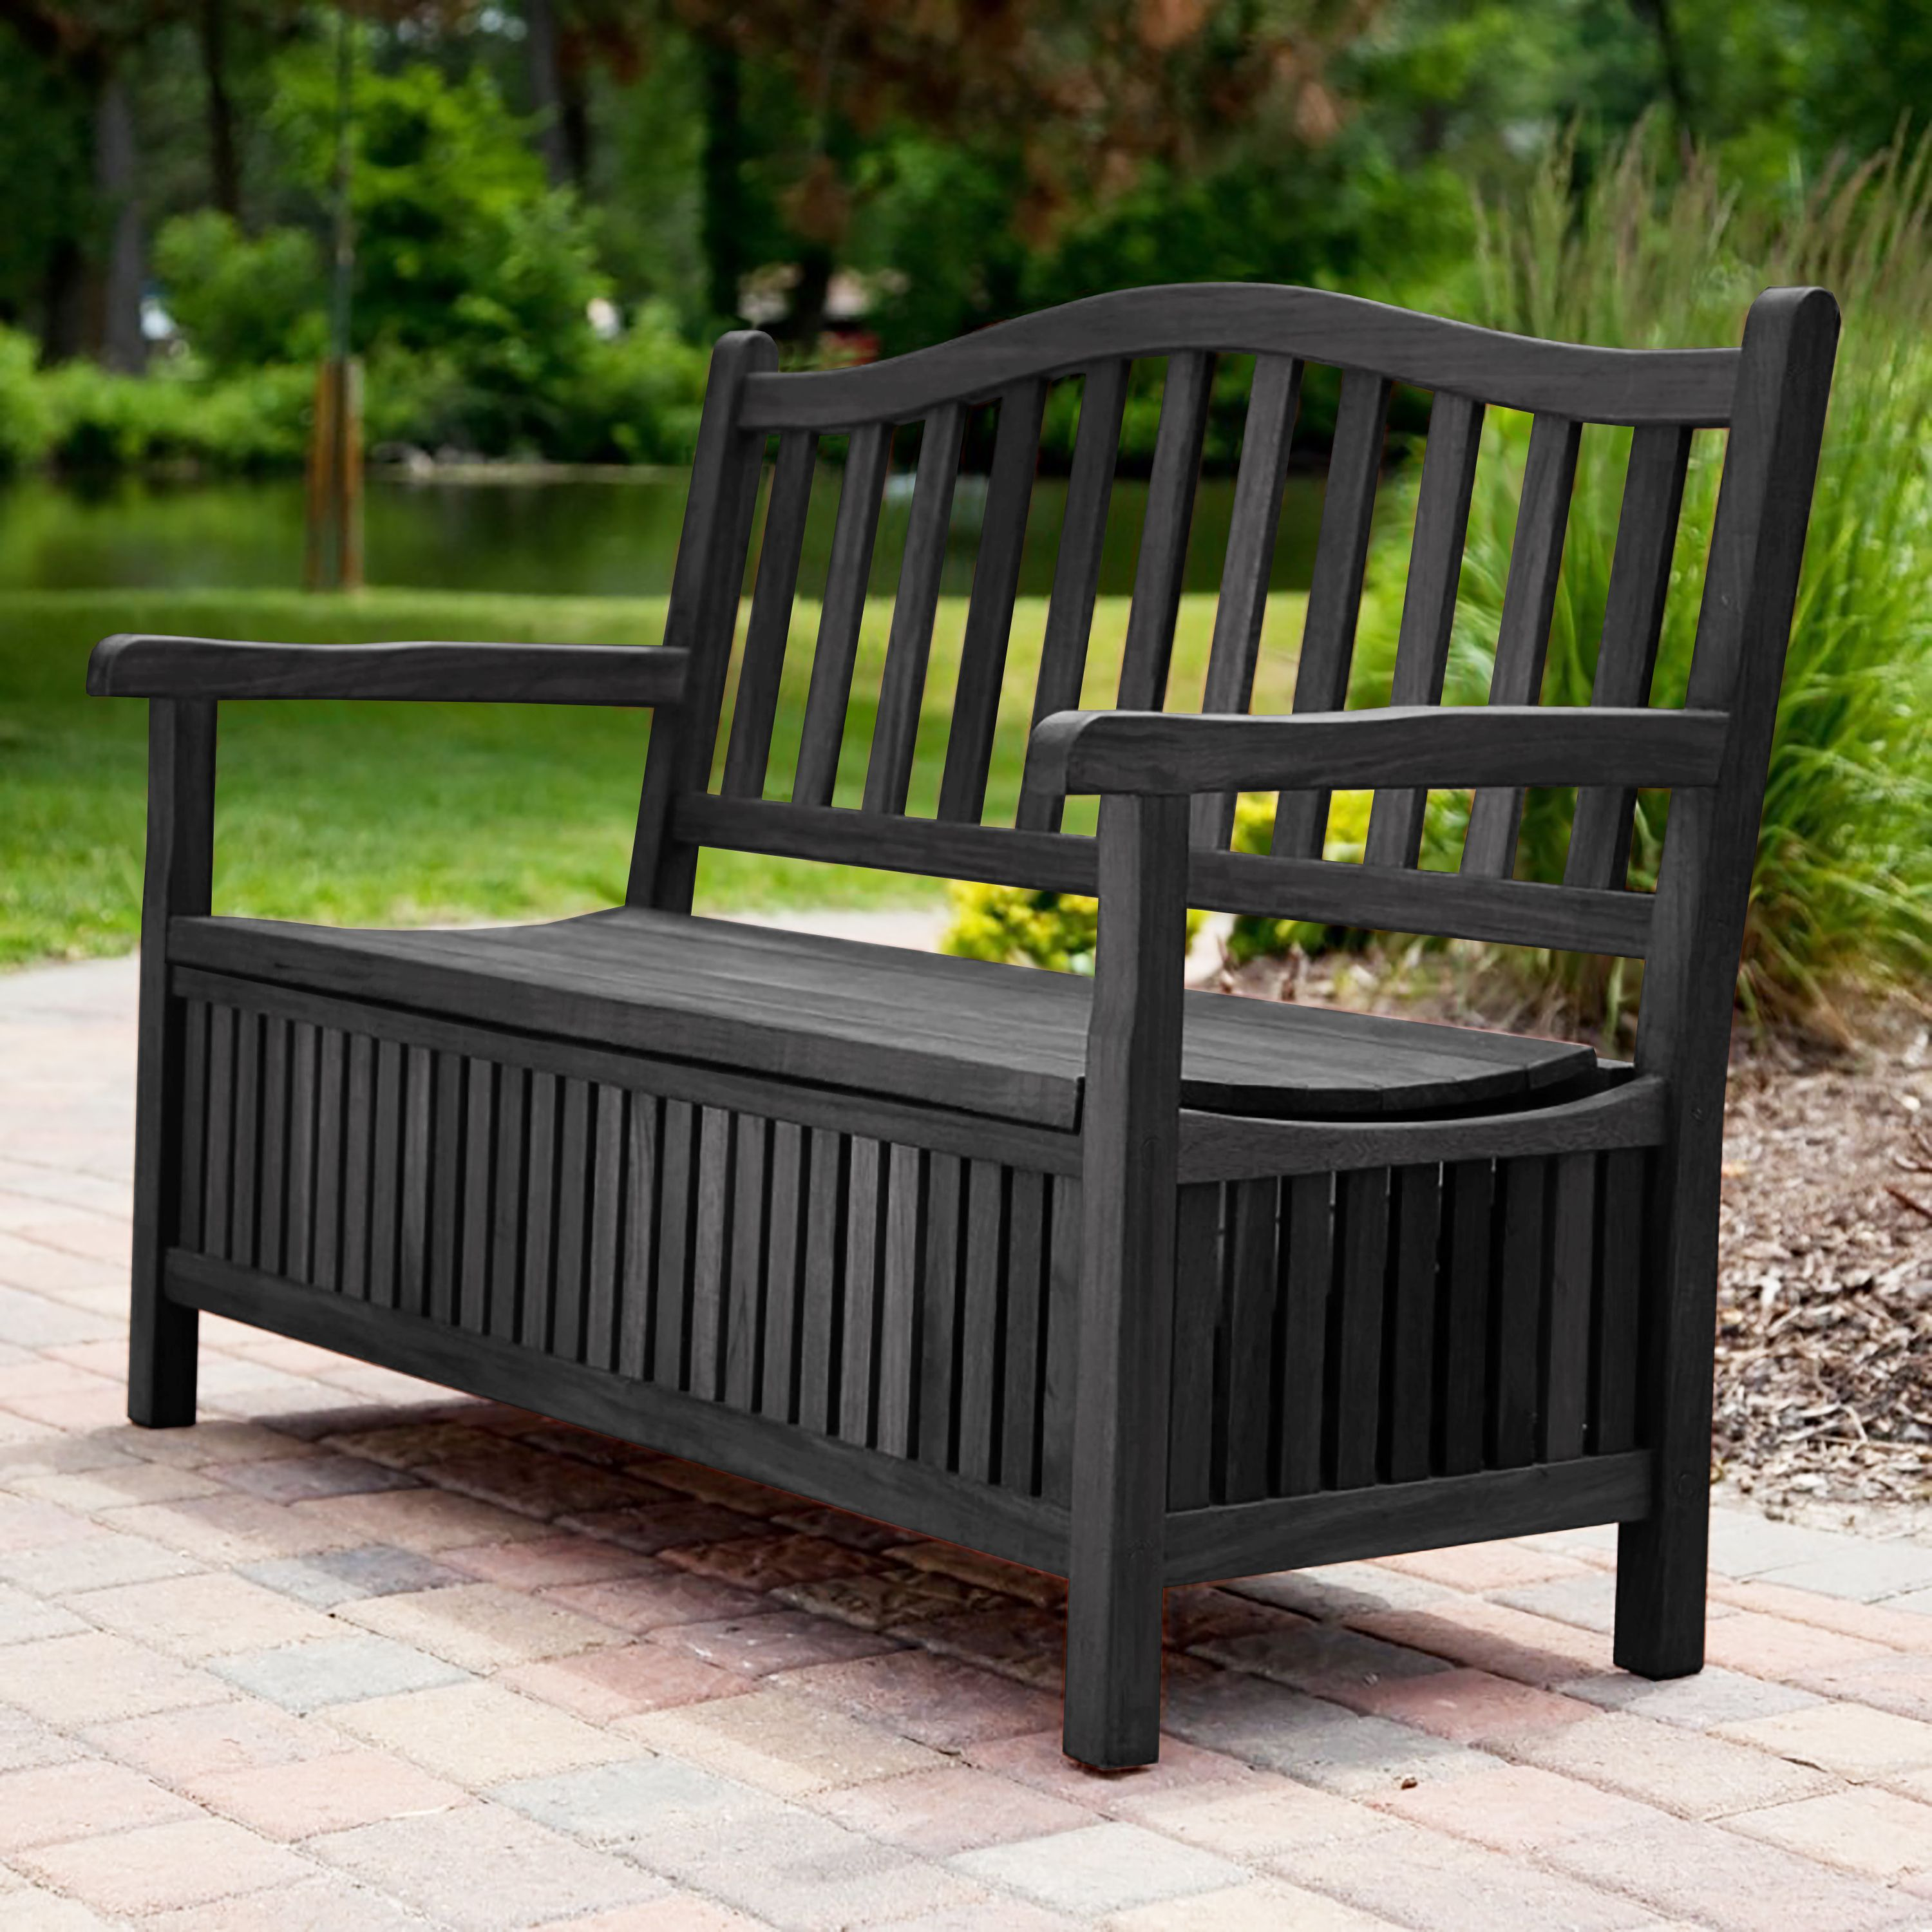 Locking No Porch Pirate Front Porch Bench No More Stealing My Packages Outdoor Bench Porch Bench Front Porch Bench